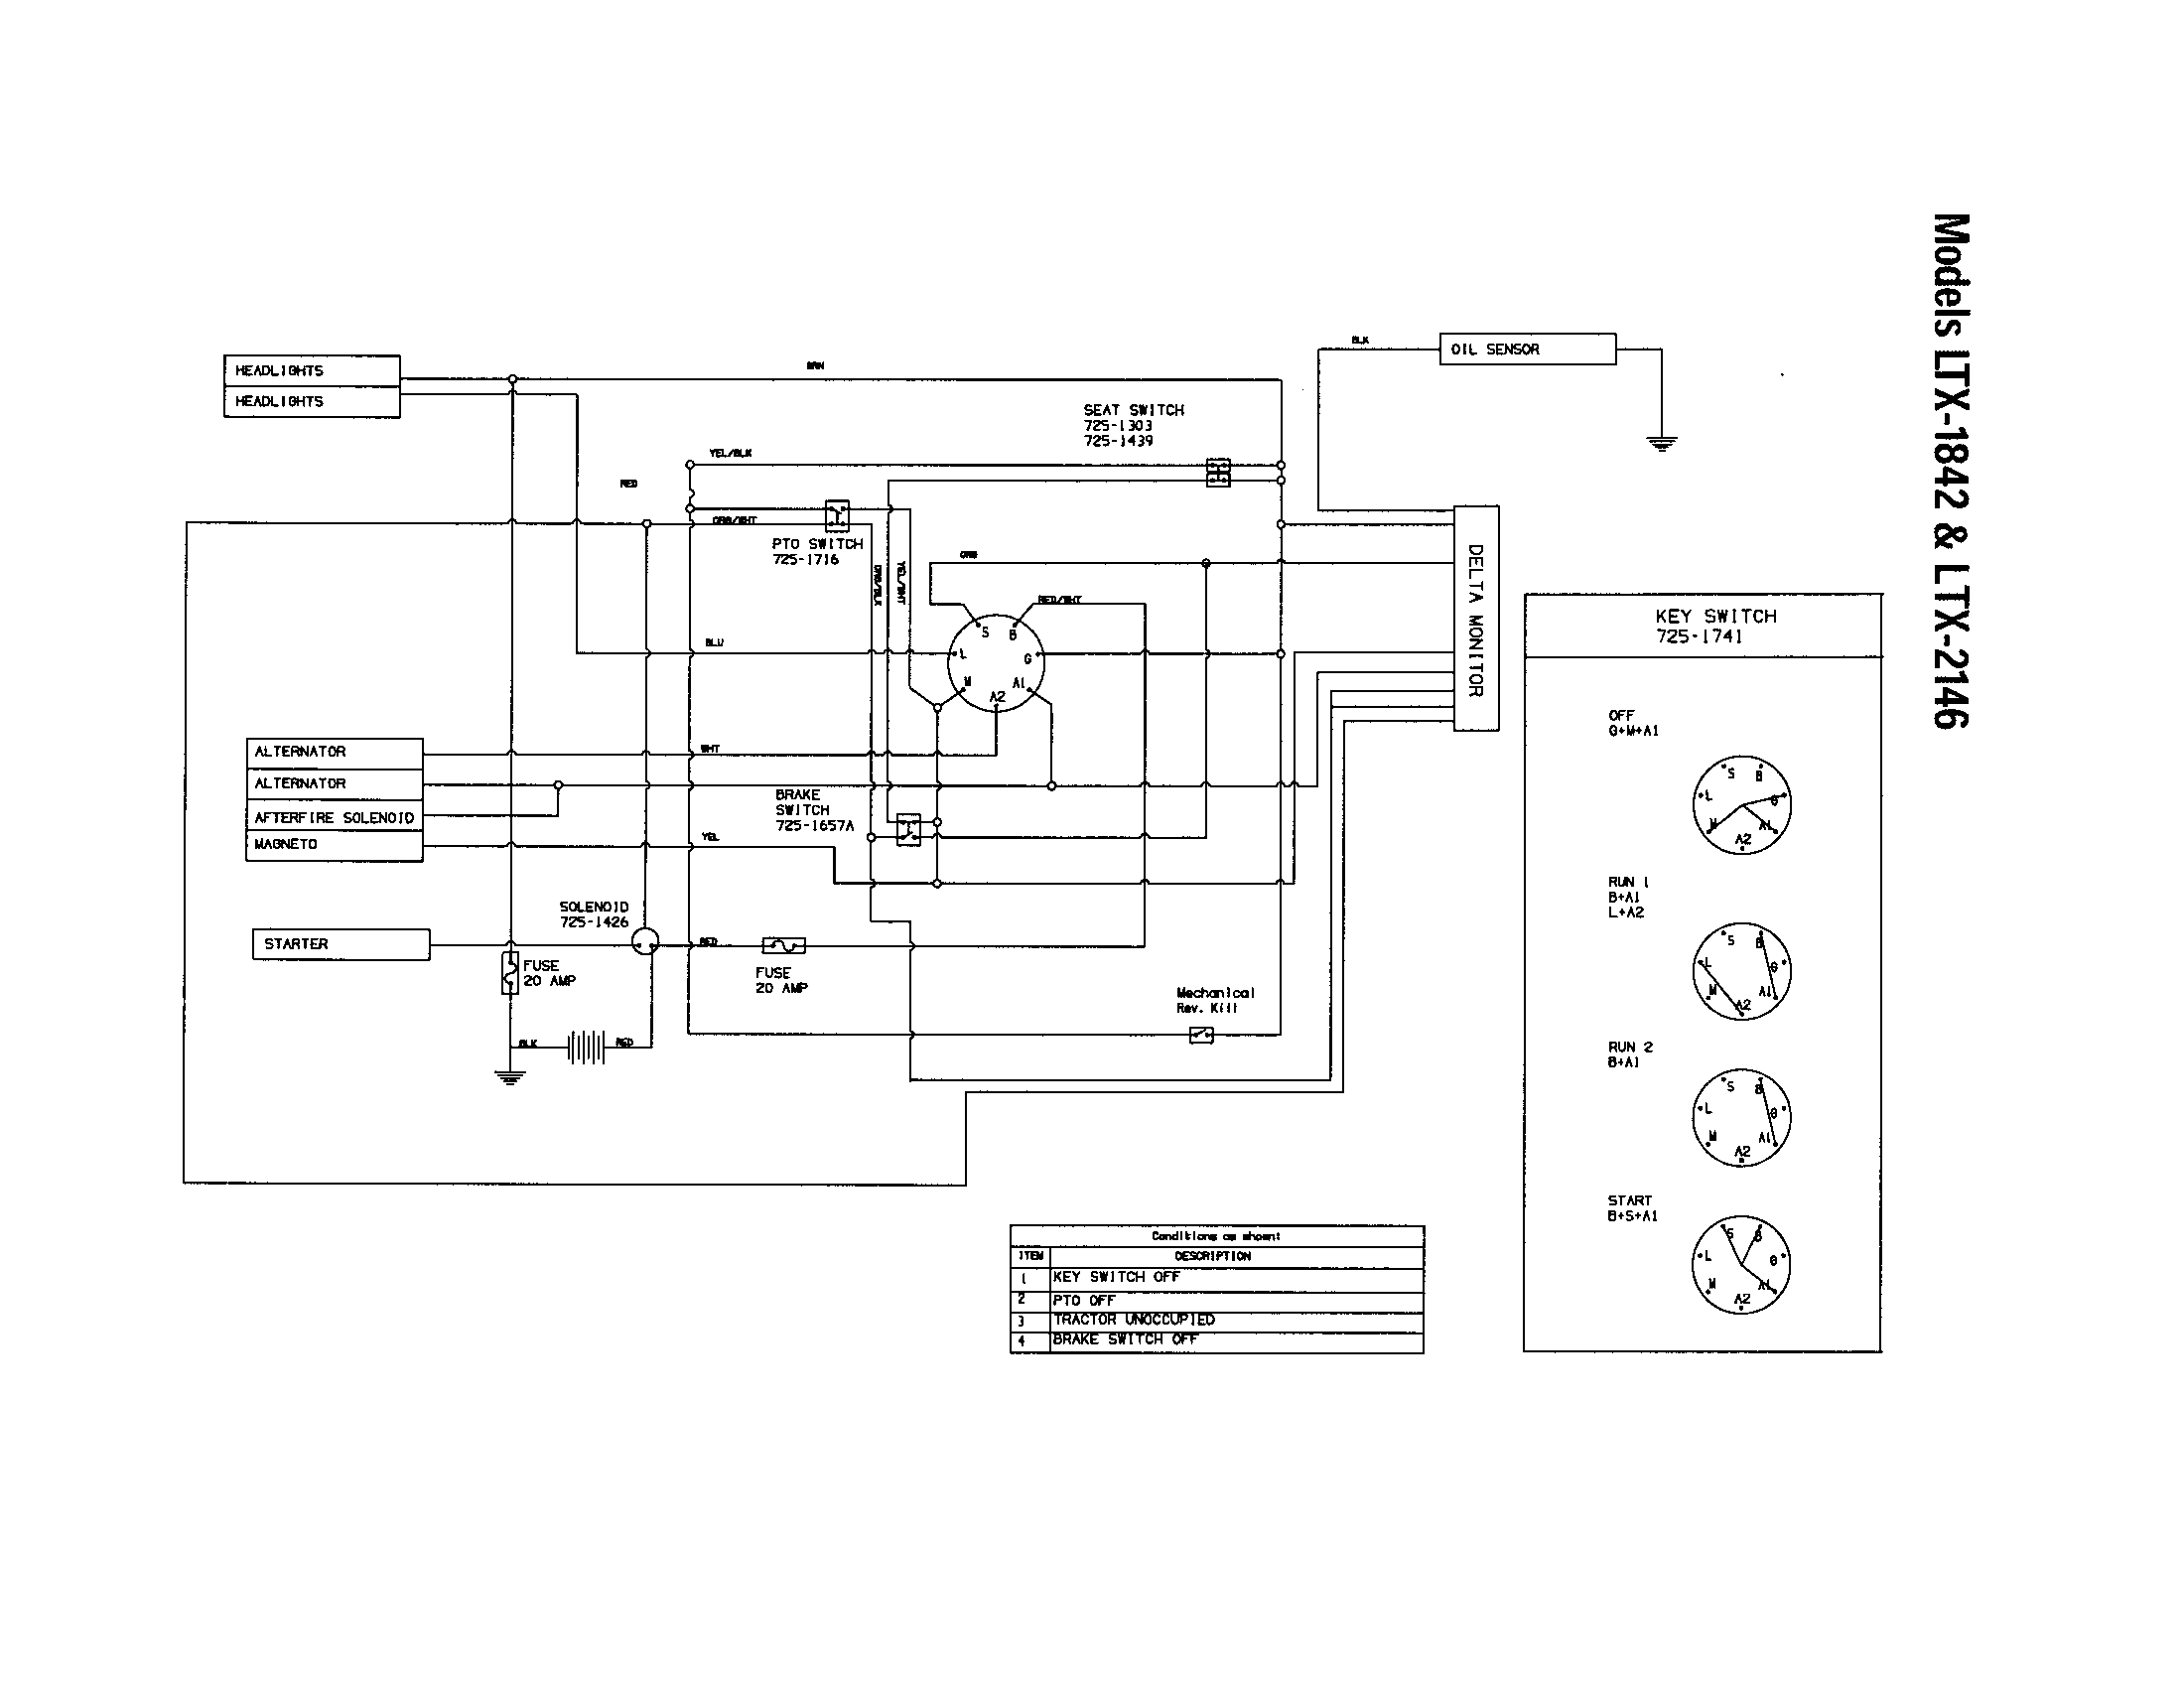 5f6fdf170ac50150de0653e8e97fb173 wiring diagram for big dog mower wiring wiring diagrams collection  at nearapp.co